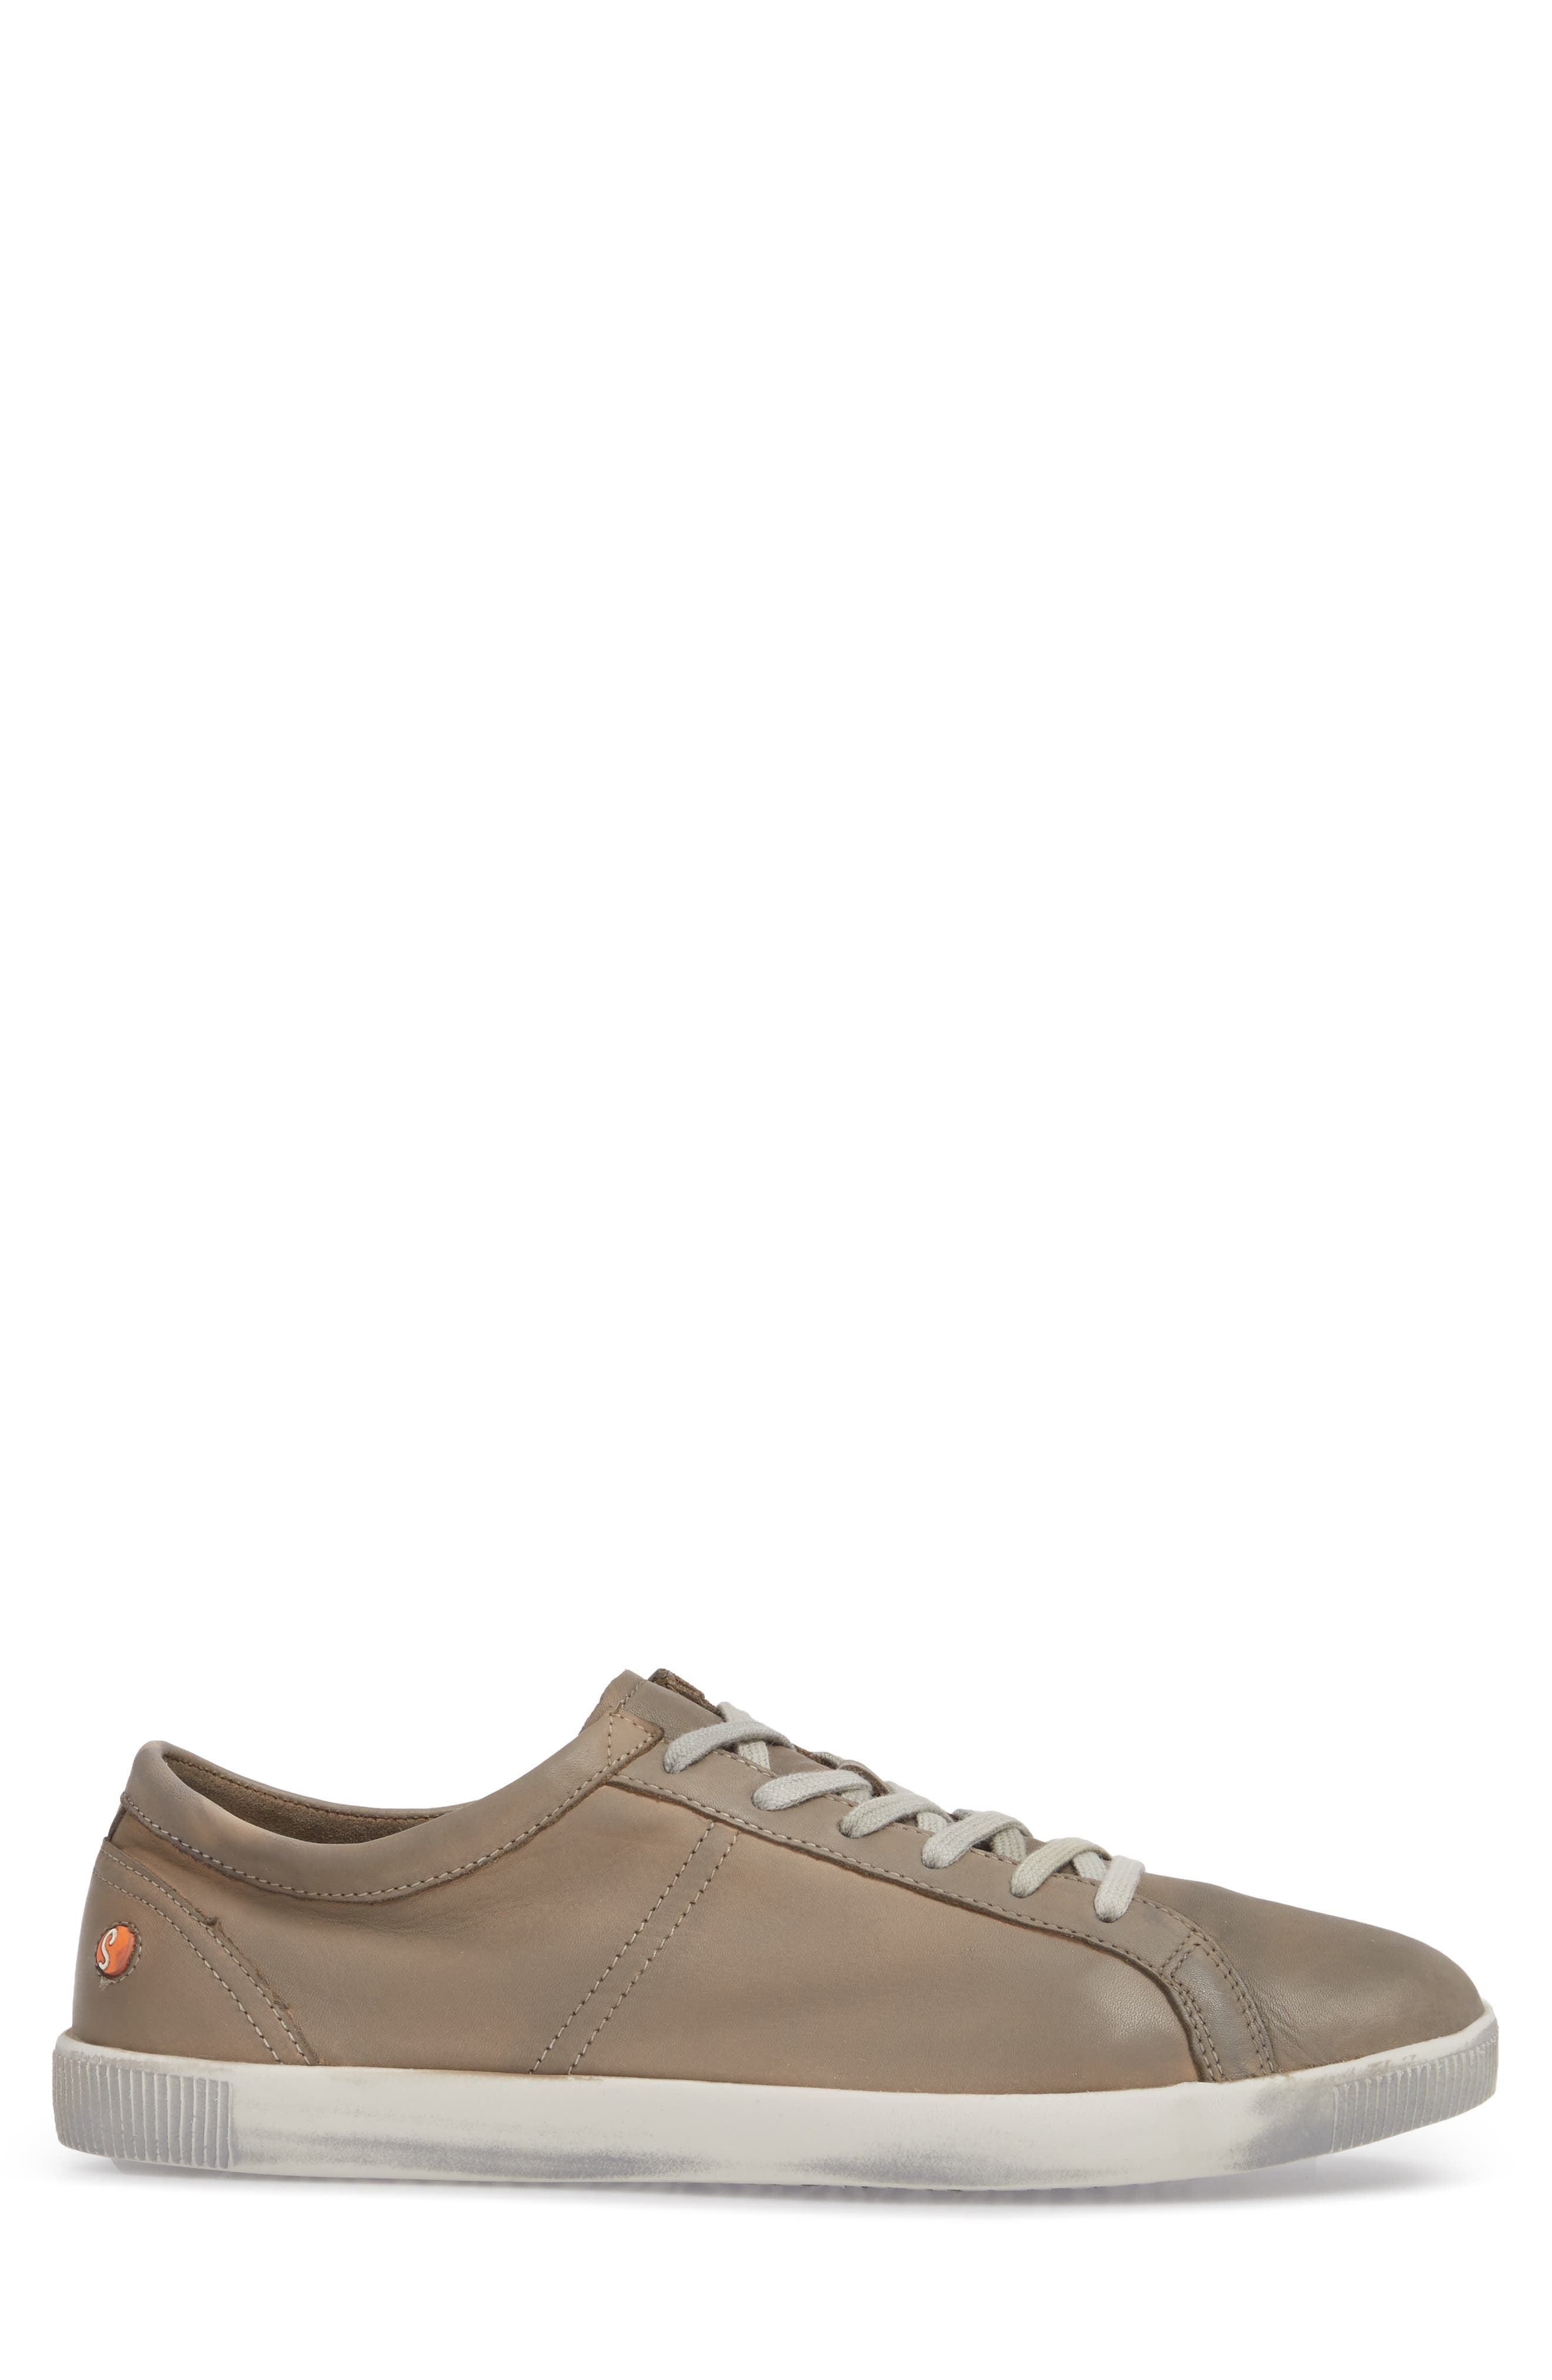 Tom Sneaker,                             Alternate thumbnail 3, color,                             Taupe Leather